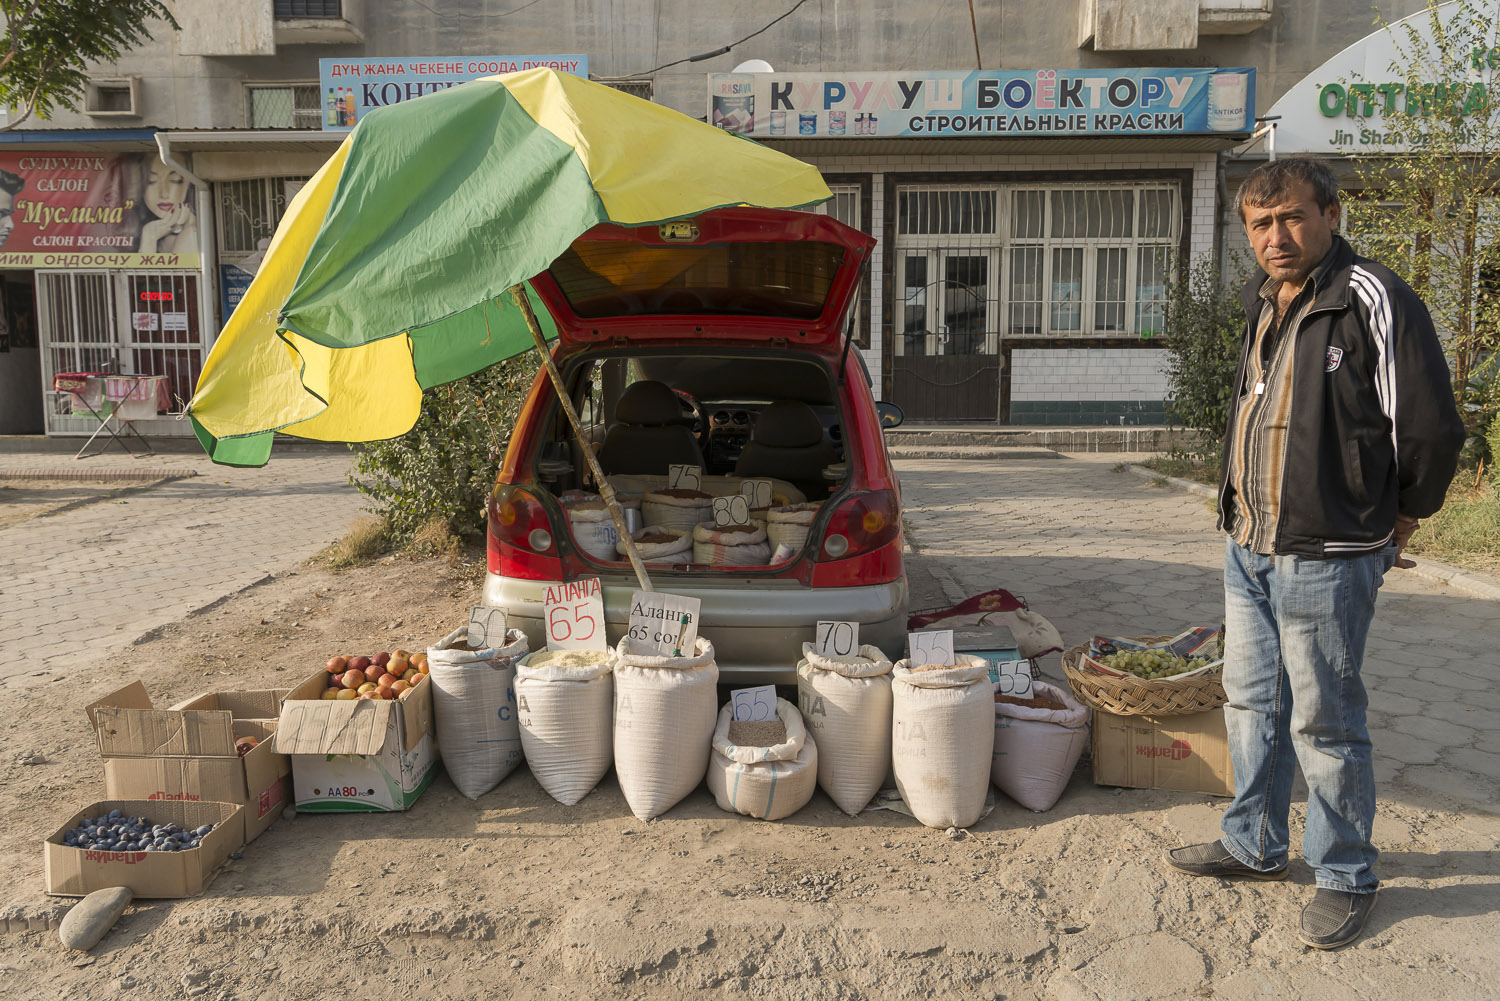 roadside-stalls-market-kyrgyzstan-travel-photography-groceries-osh-.jpg